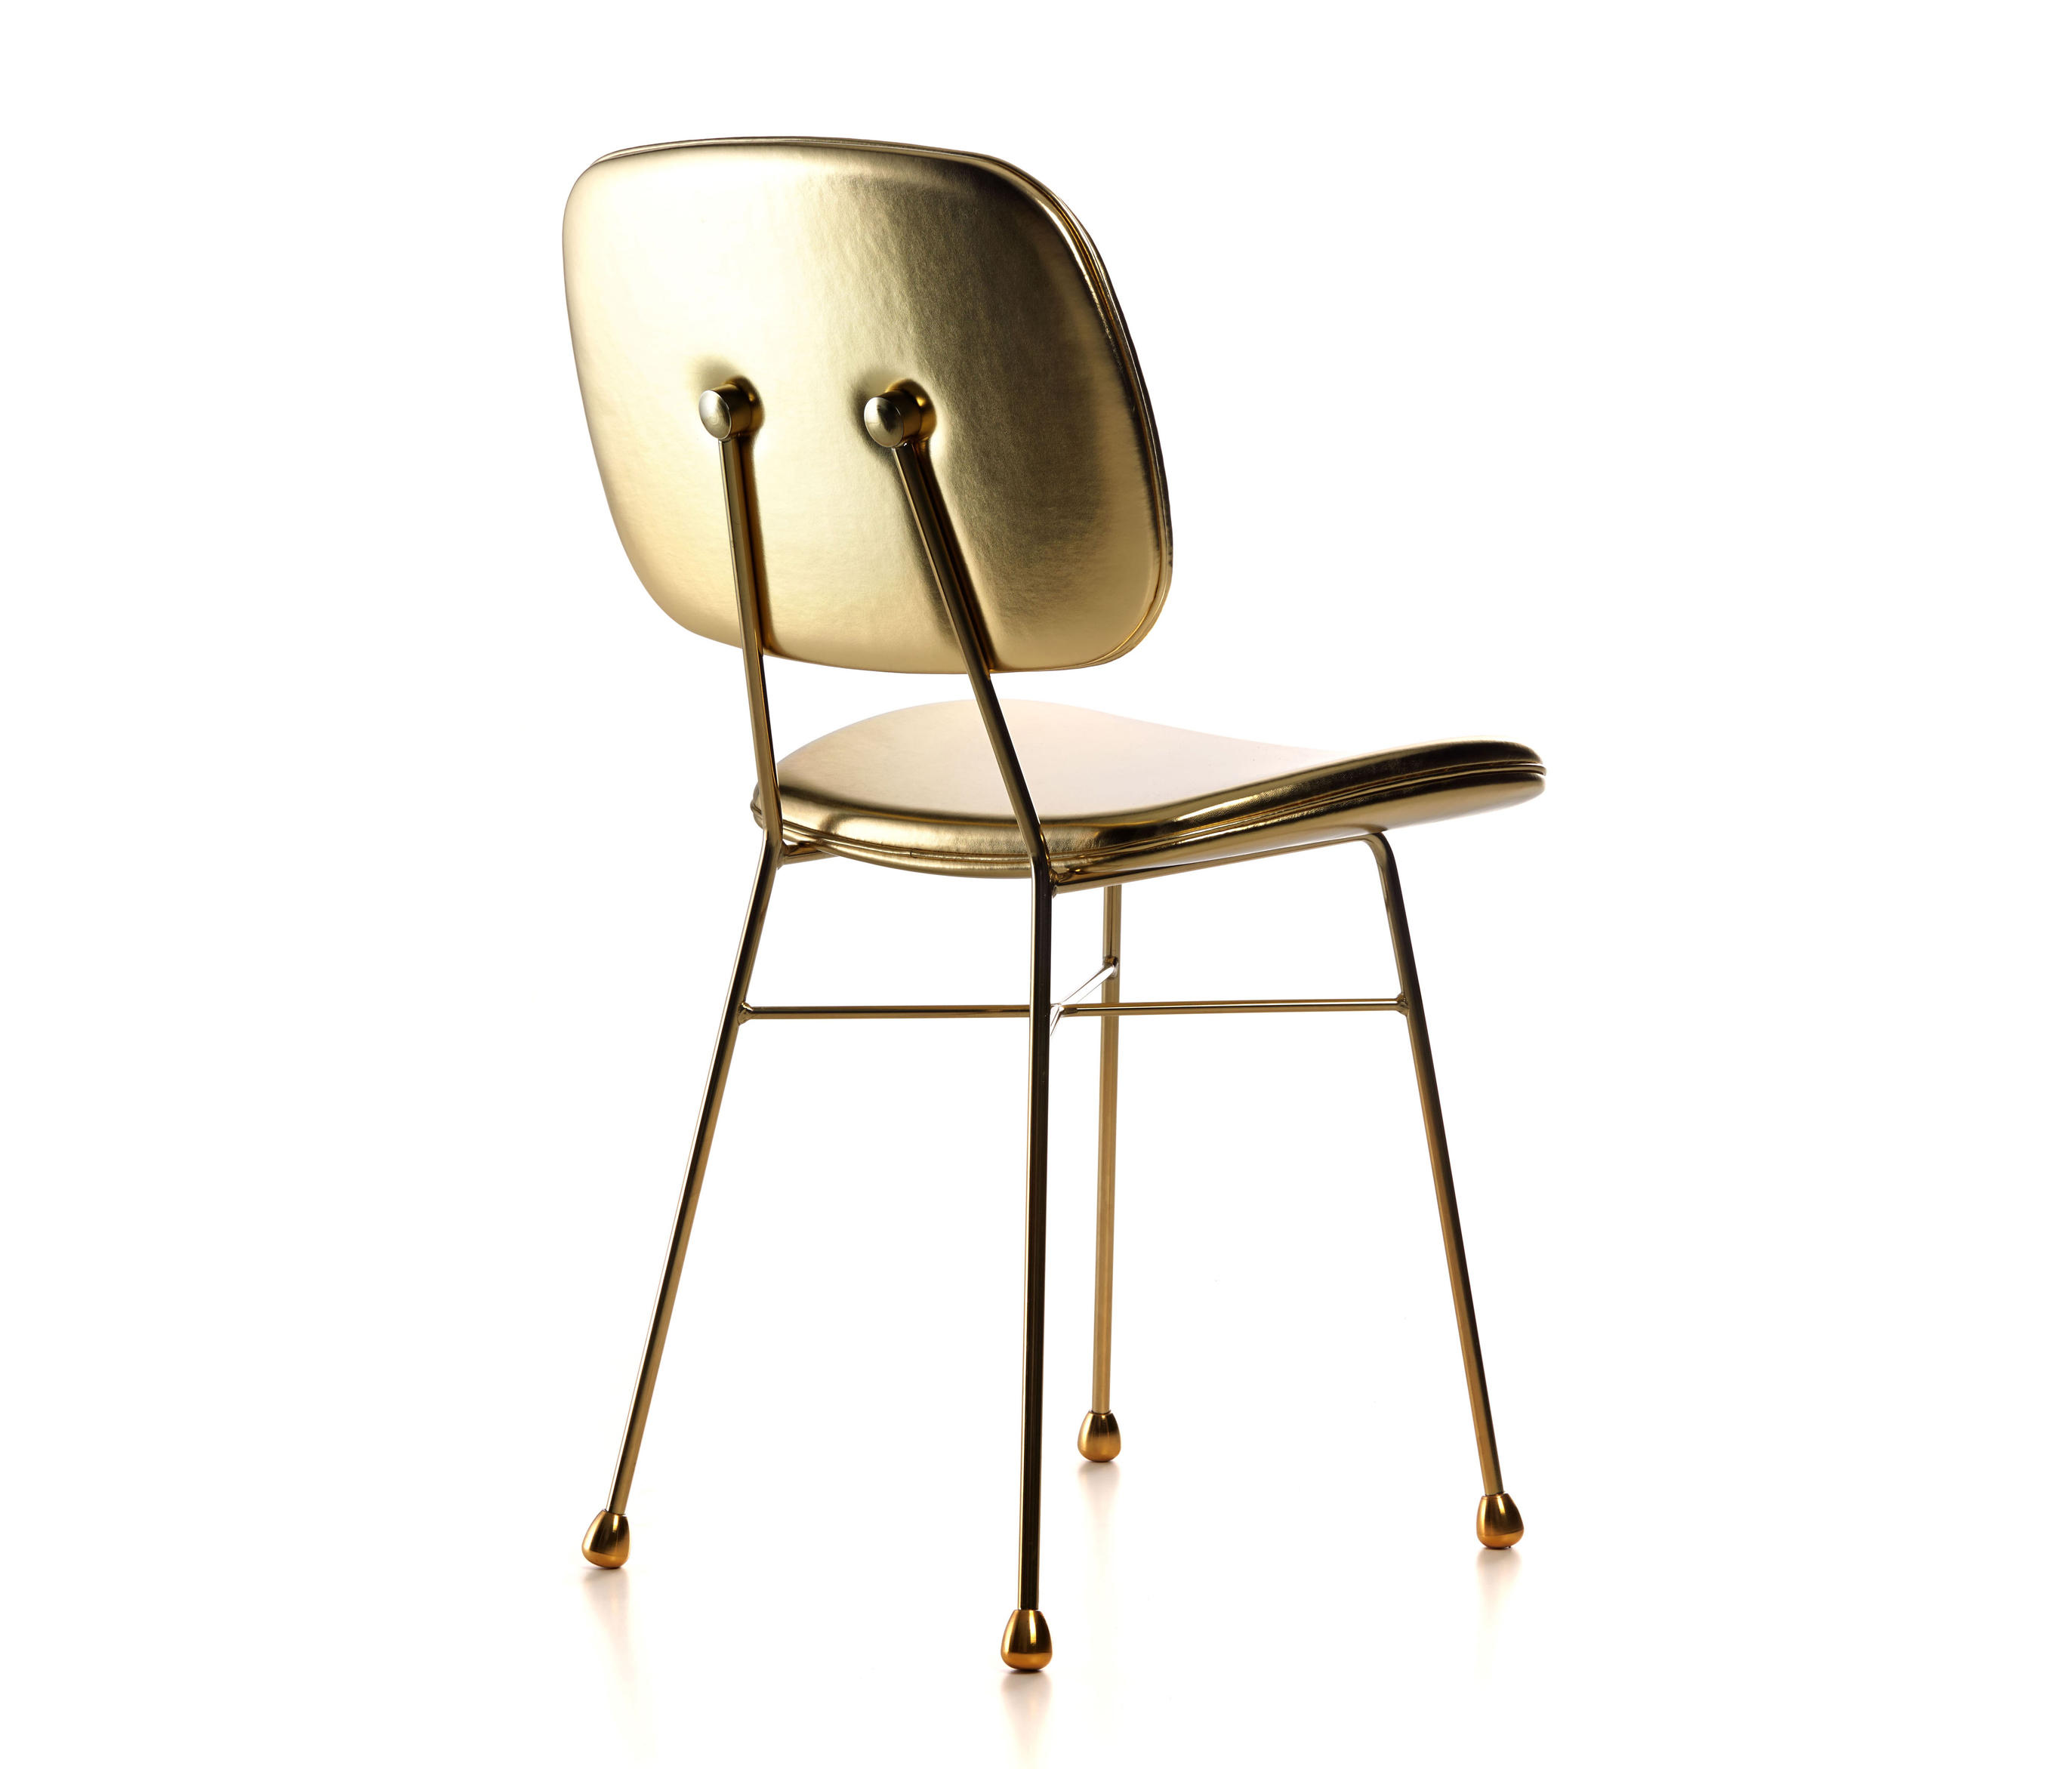 THE GOLDEN CHAIR Restaurant chairs from moooi